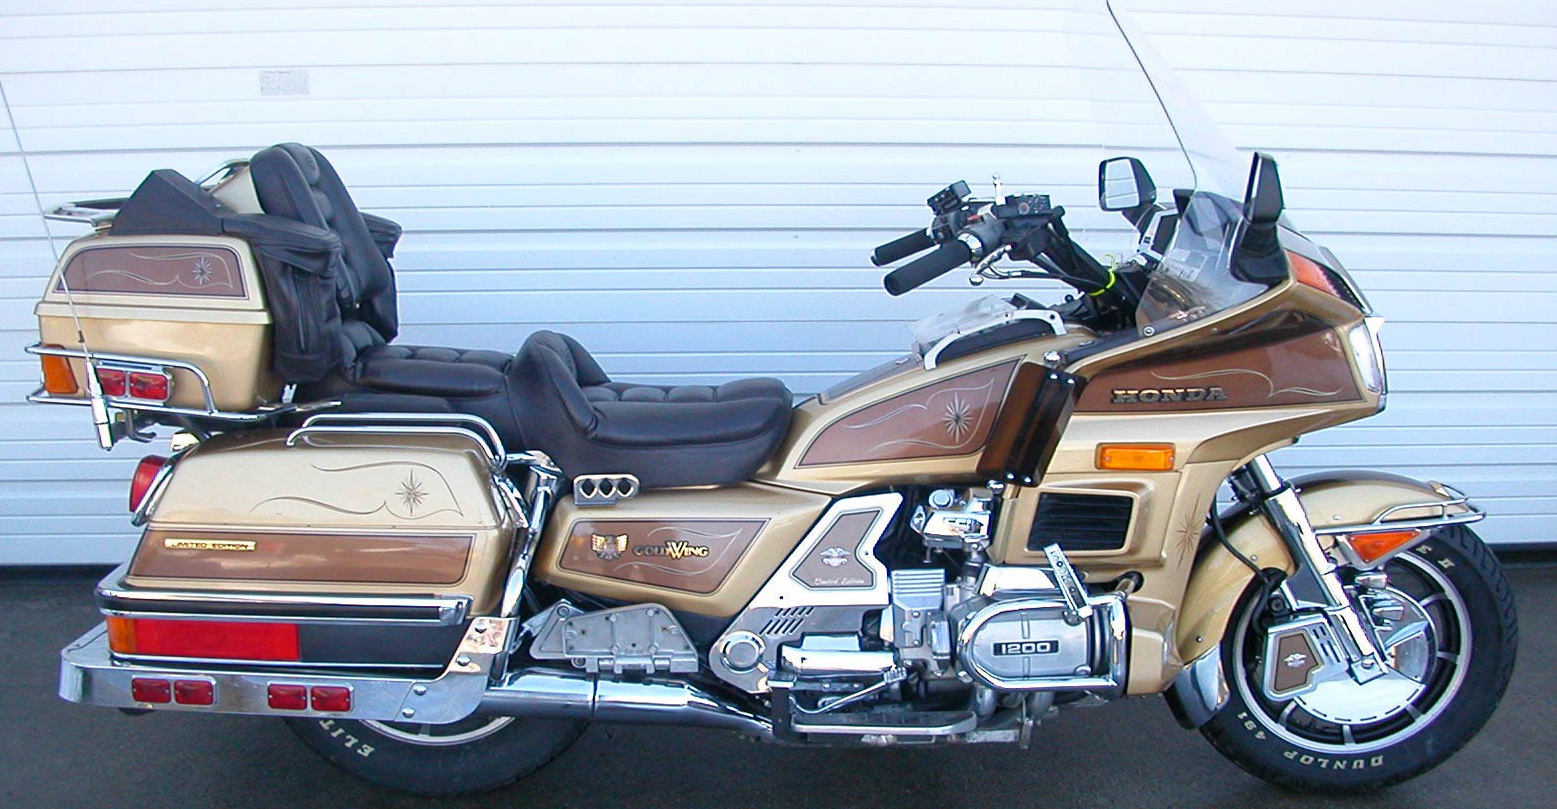 2013 honda gl 1800 gold wing pics specs and information. Black Bedroom Furniture Sets. Home Design Ideas